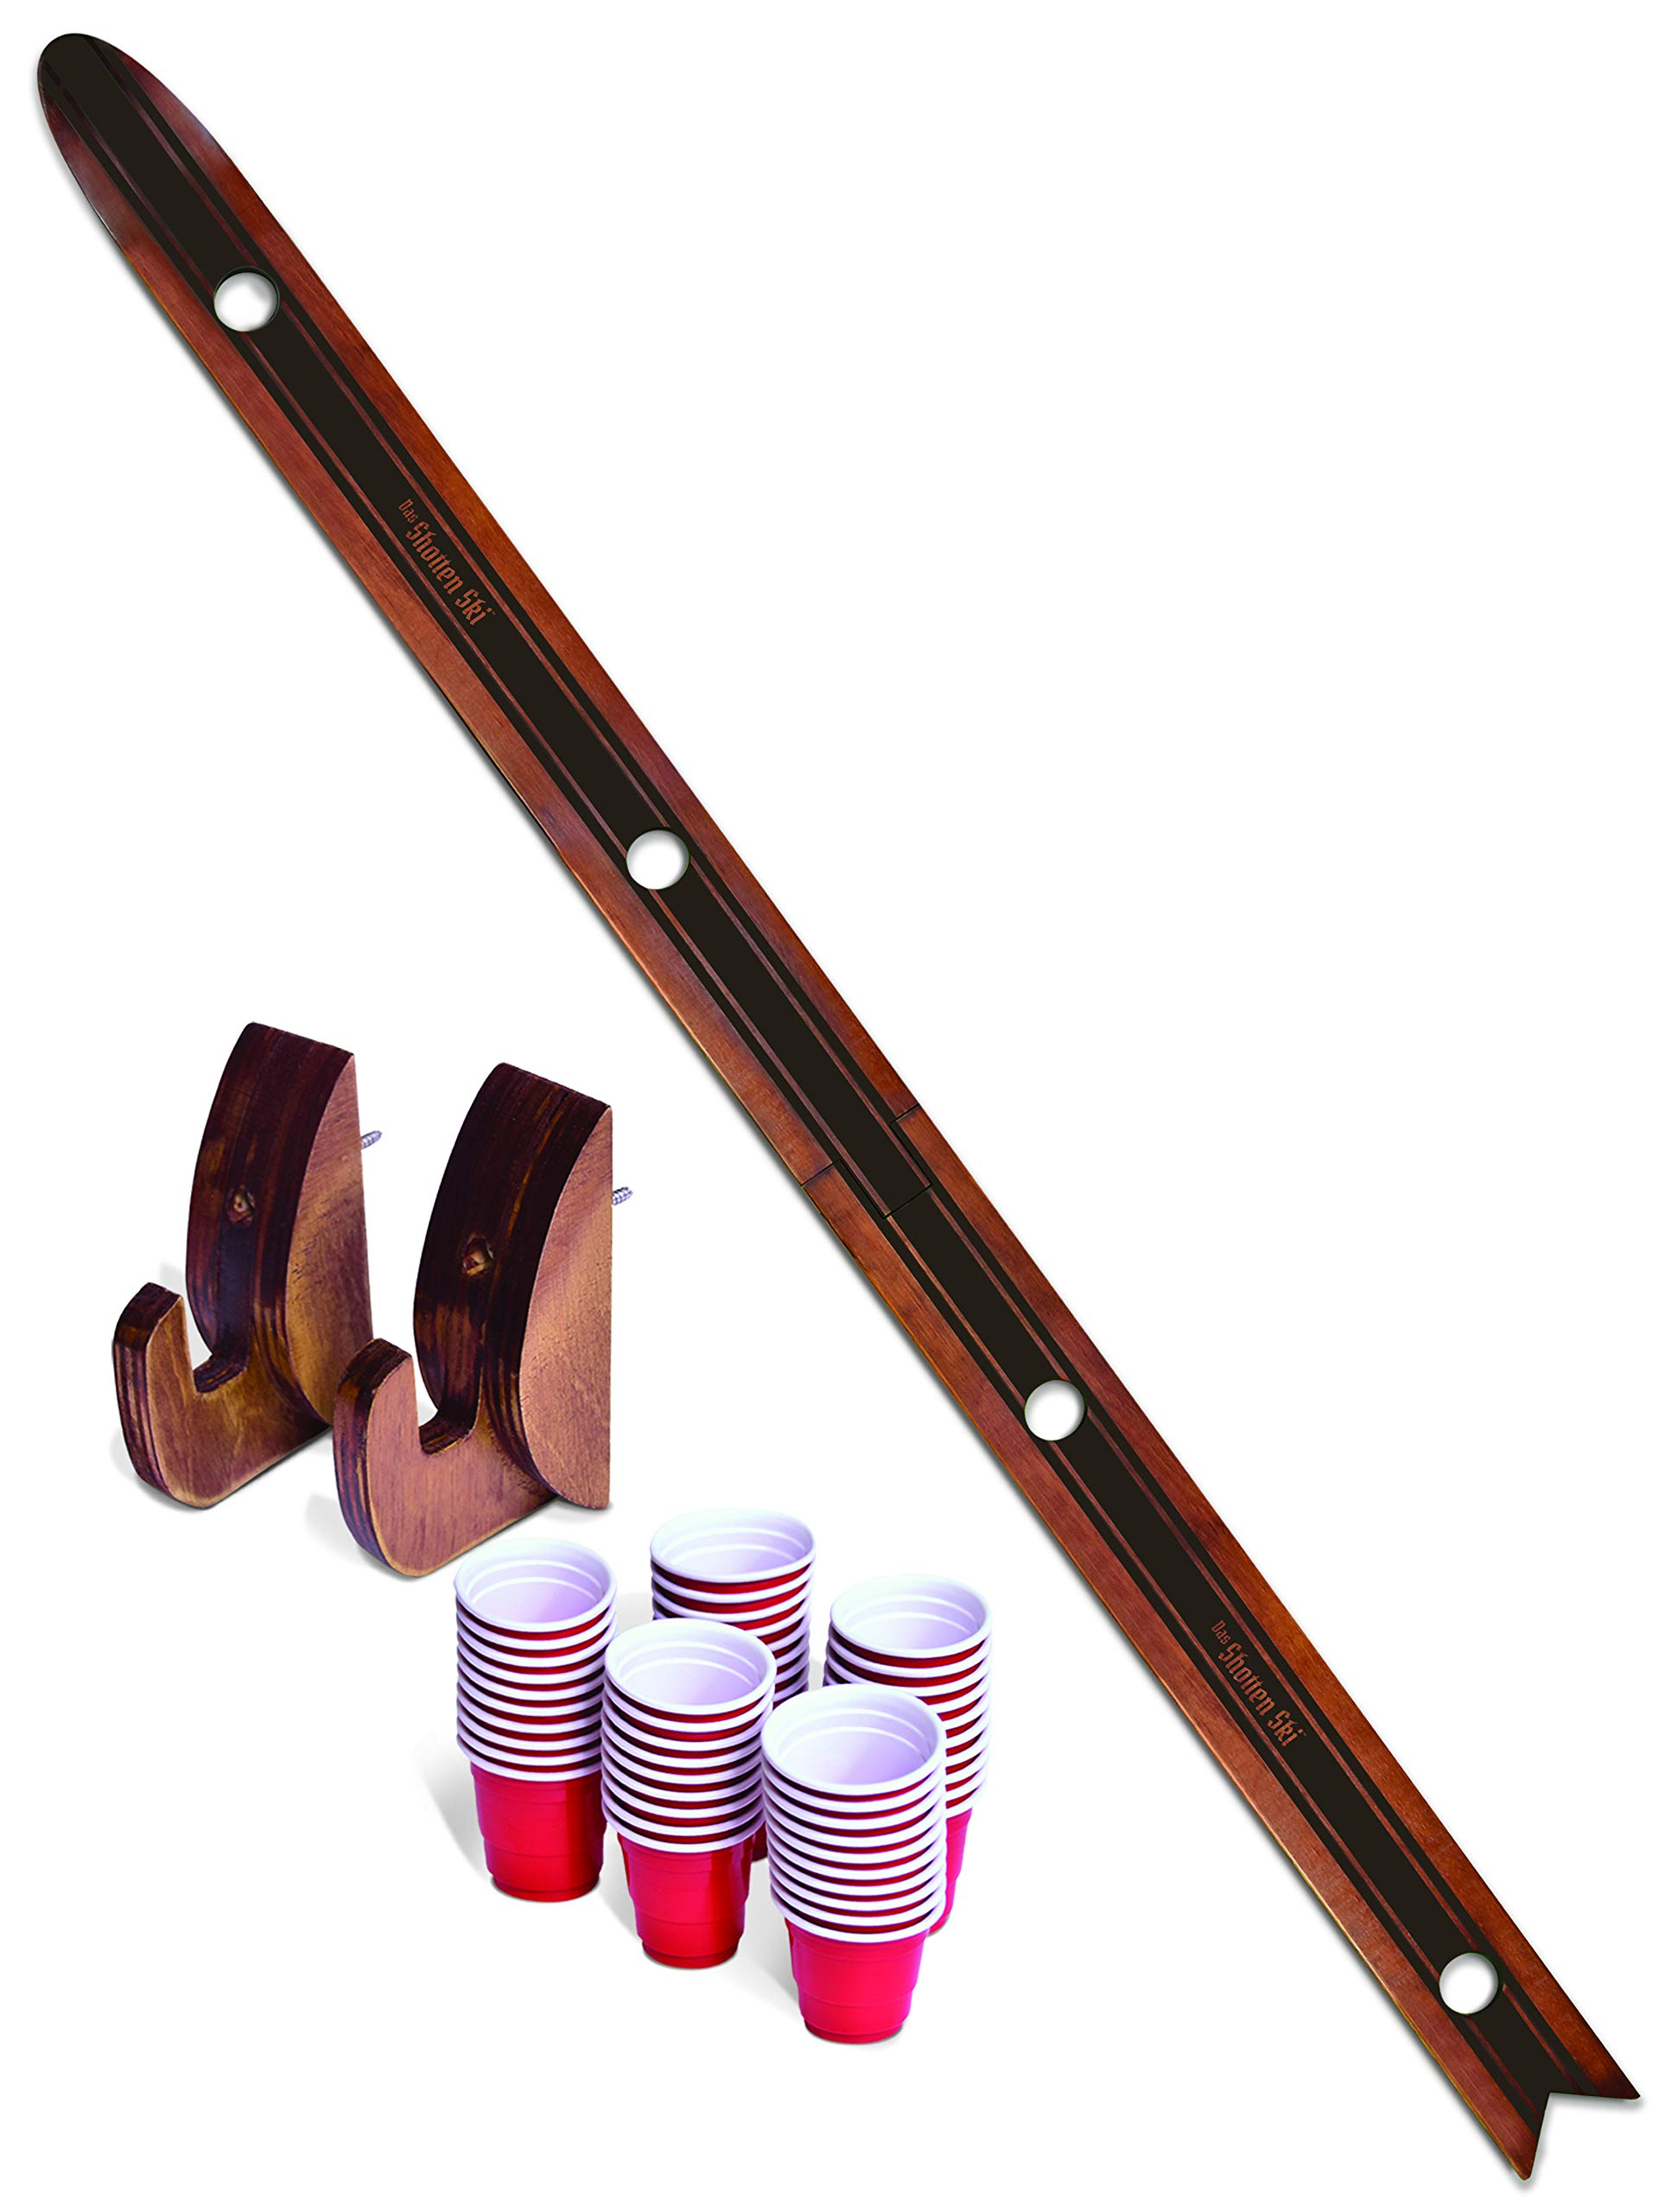 GoPong Das Shotten Ski | Rustic Wood 4 Person Drinking Ski with 50 Plastic Shot Glasses by GoPong